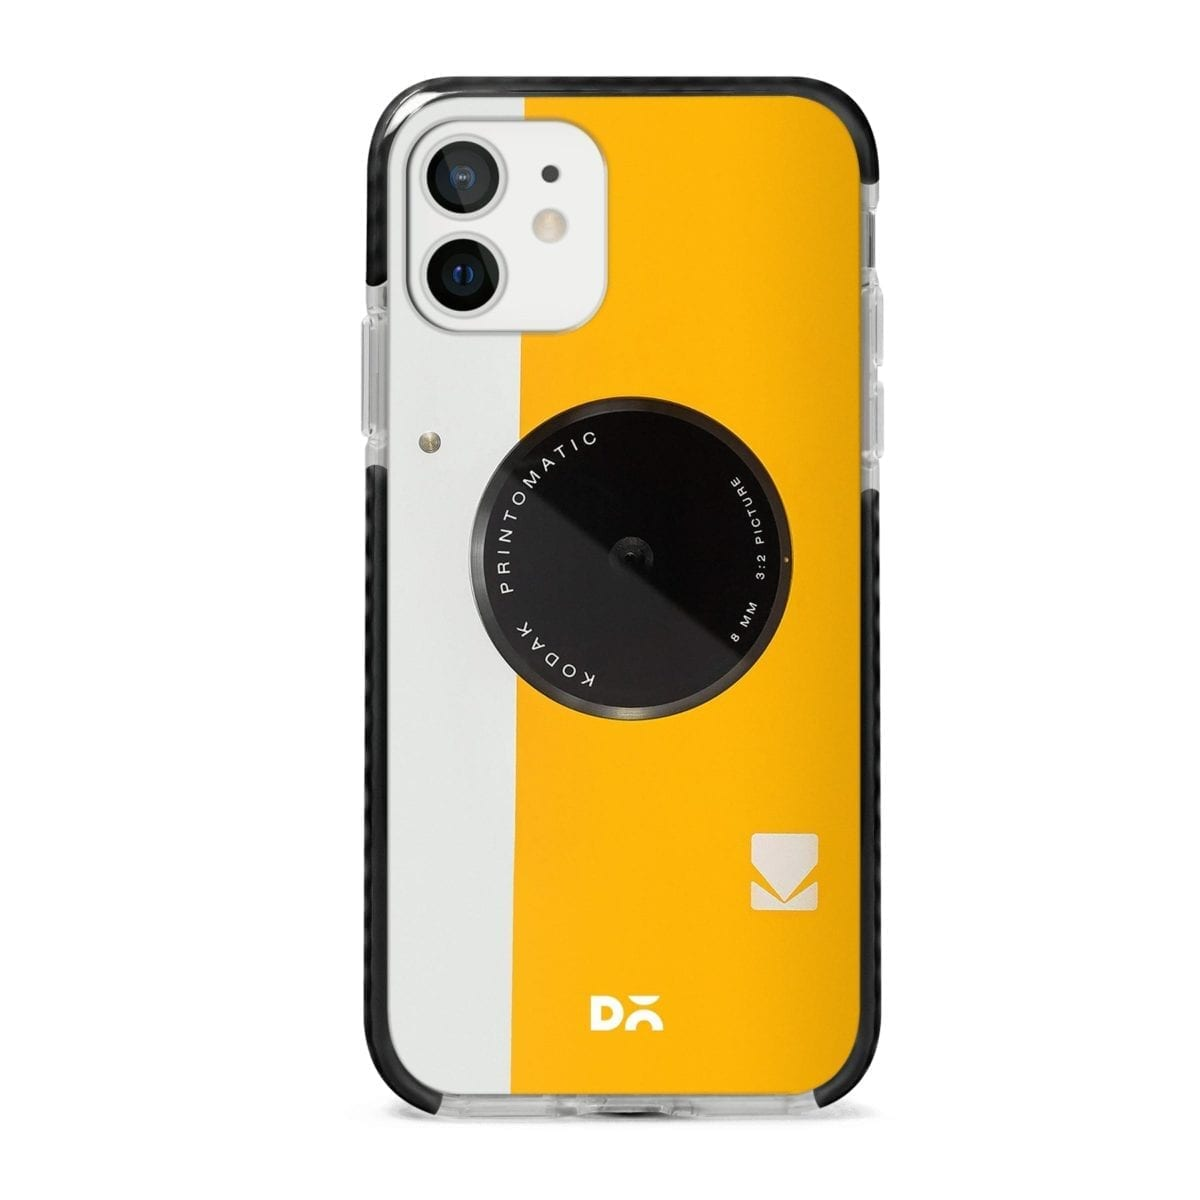 Kodak Yellow Stride Case Cover for Apple iPhone 12 Mini and Apple iPhone 12 with great design and shock proof | Klippik | Online Shopping | Kuwait UAE Saudi